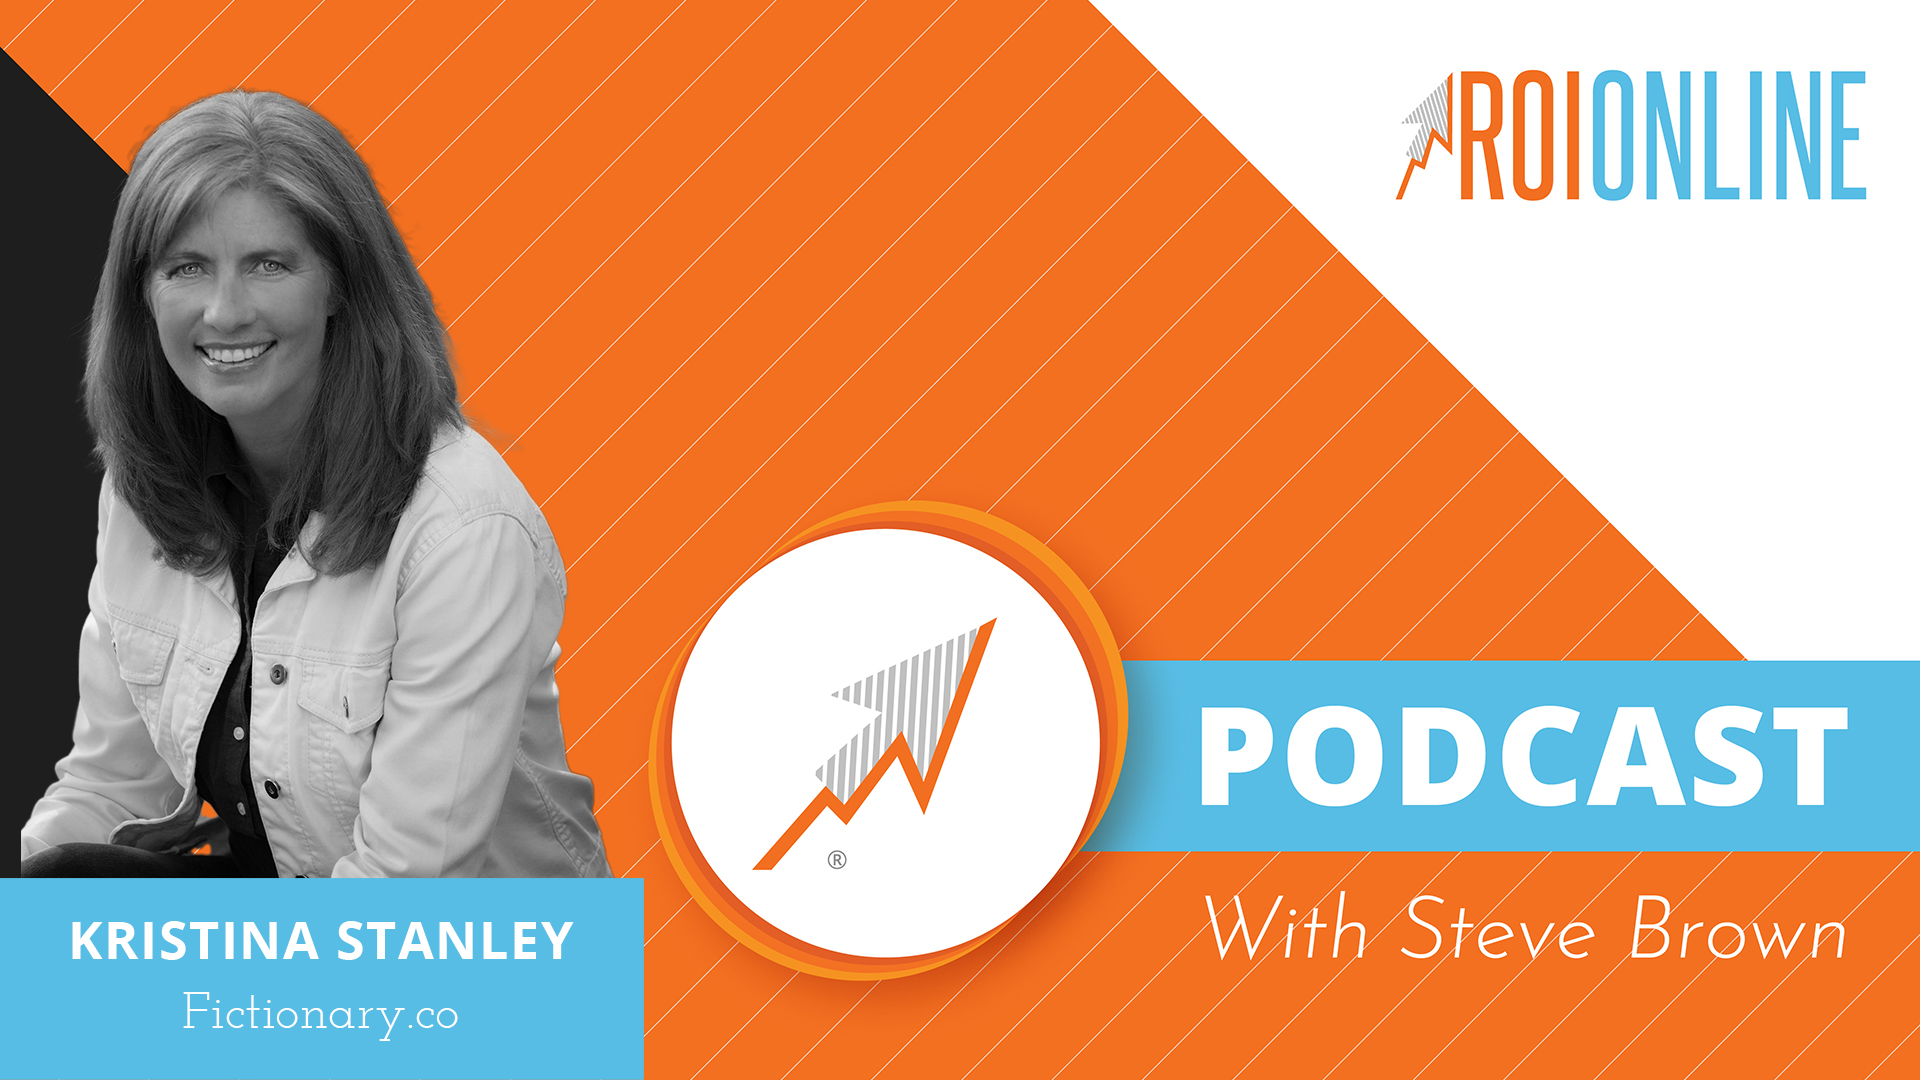 The ROI Online Podcast with guest Kristina Stanley